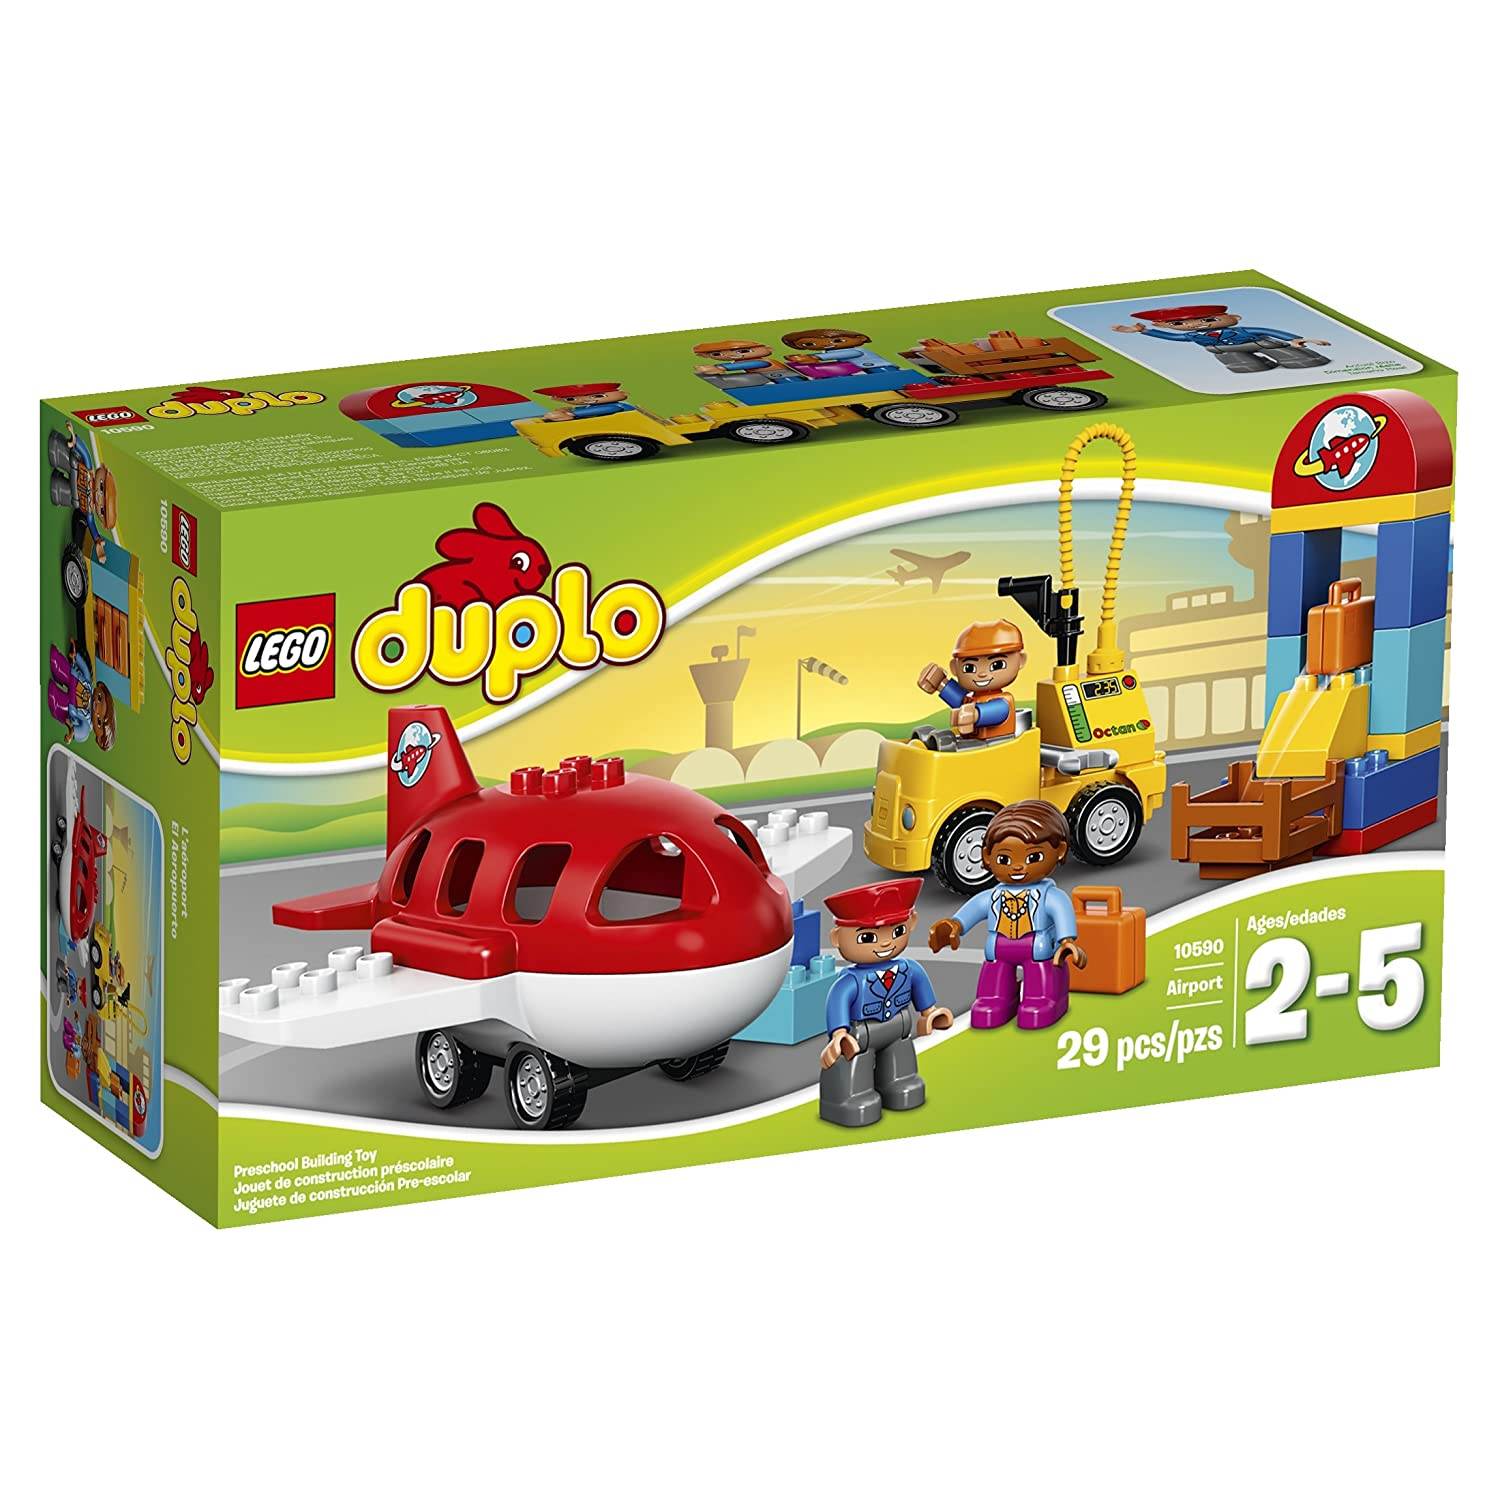 LEGO DUPLO Town Airport 6101284